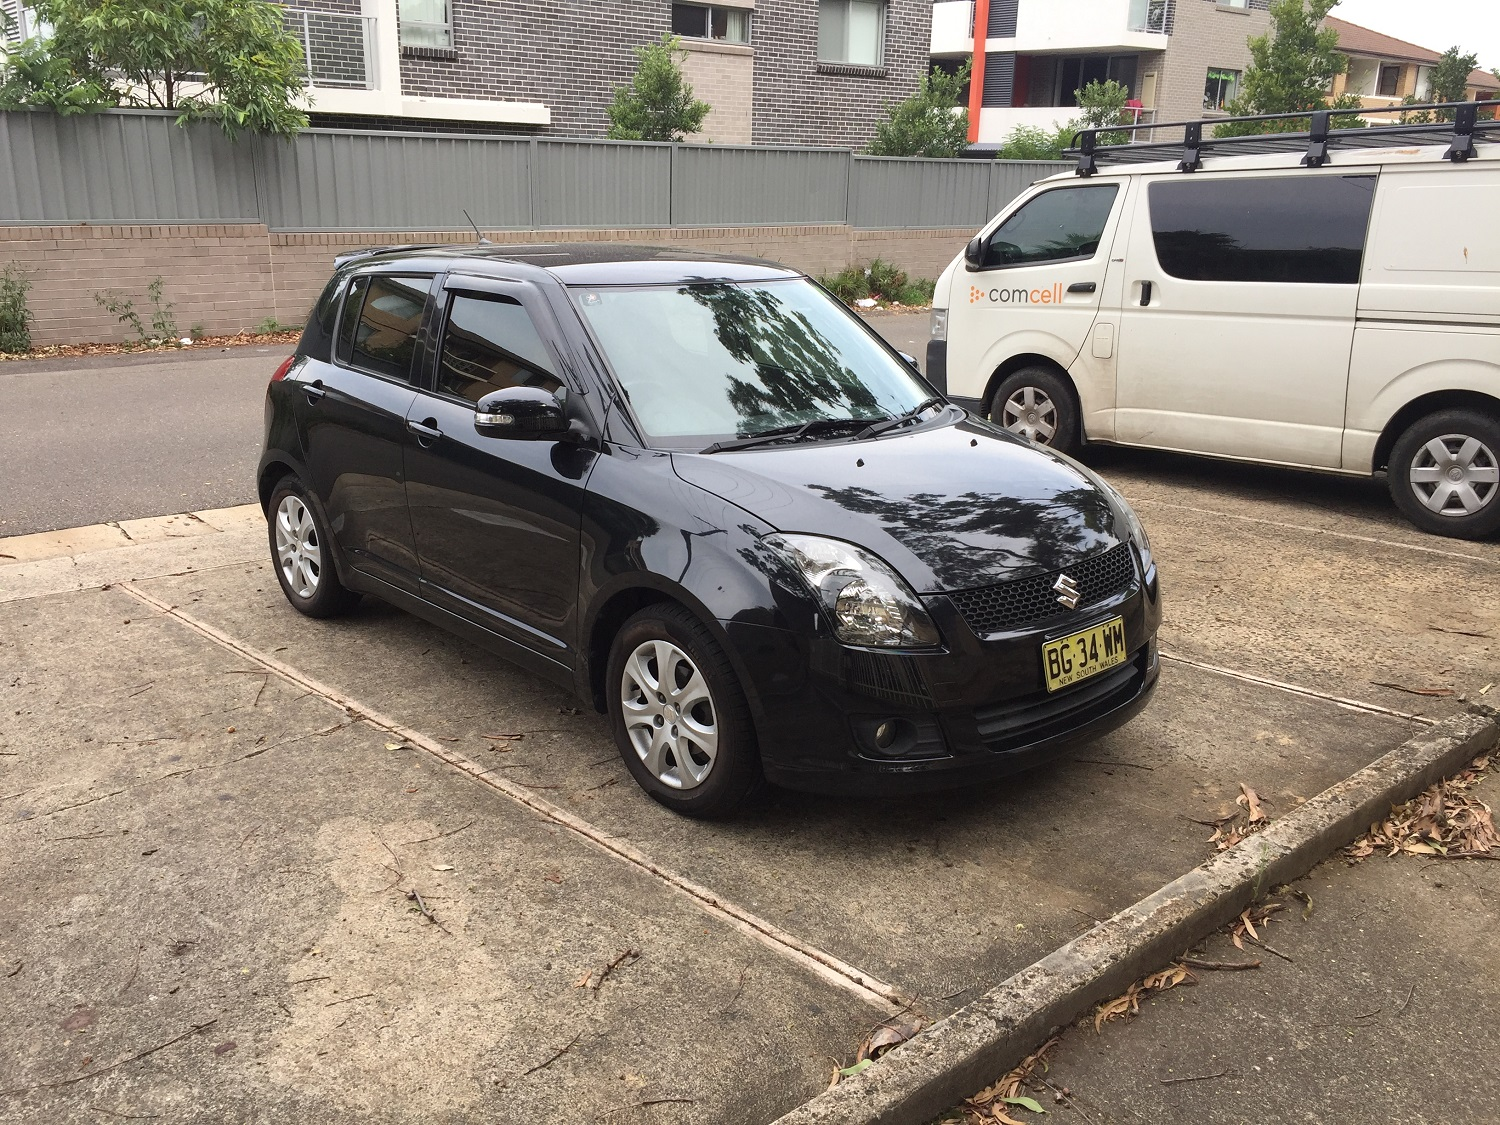 Picture of Francesco's 2009 Suzuki Swift